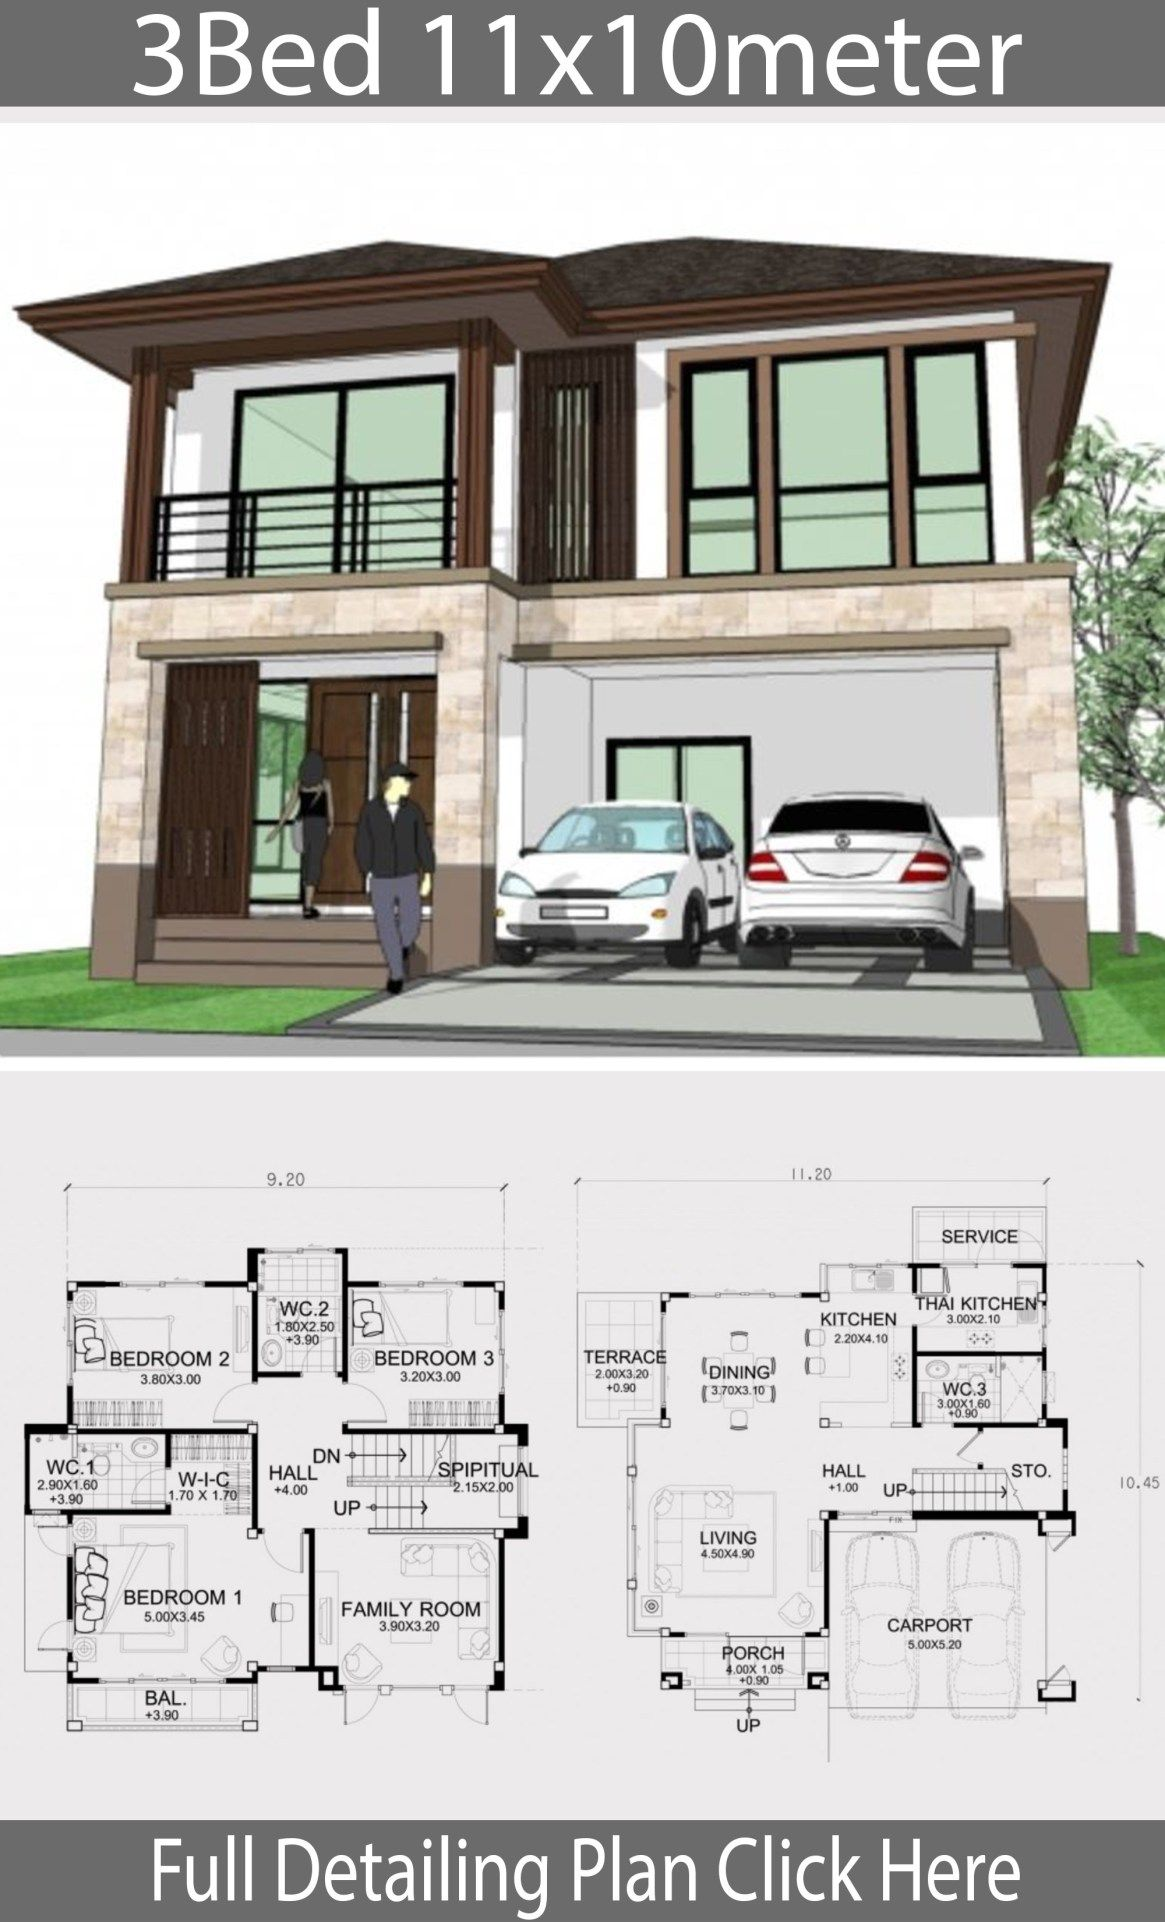 Home Design Plan 11x10m With 3 Bedrooms Home Design With Plansearch House Blueprints Contemporary House Plans House Plans